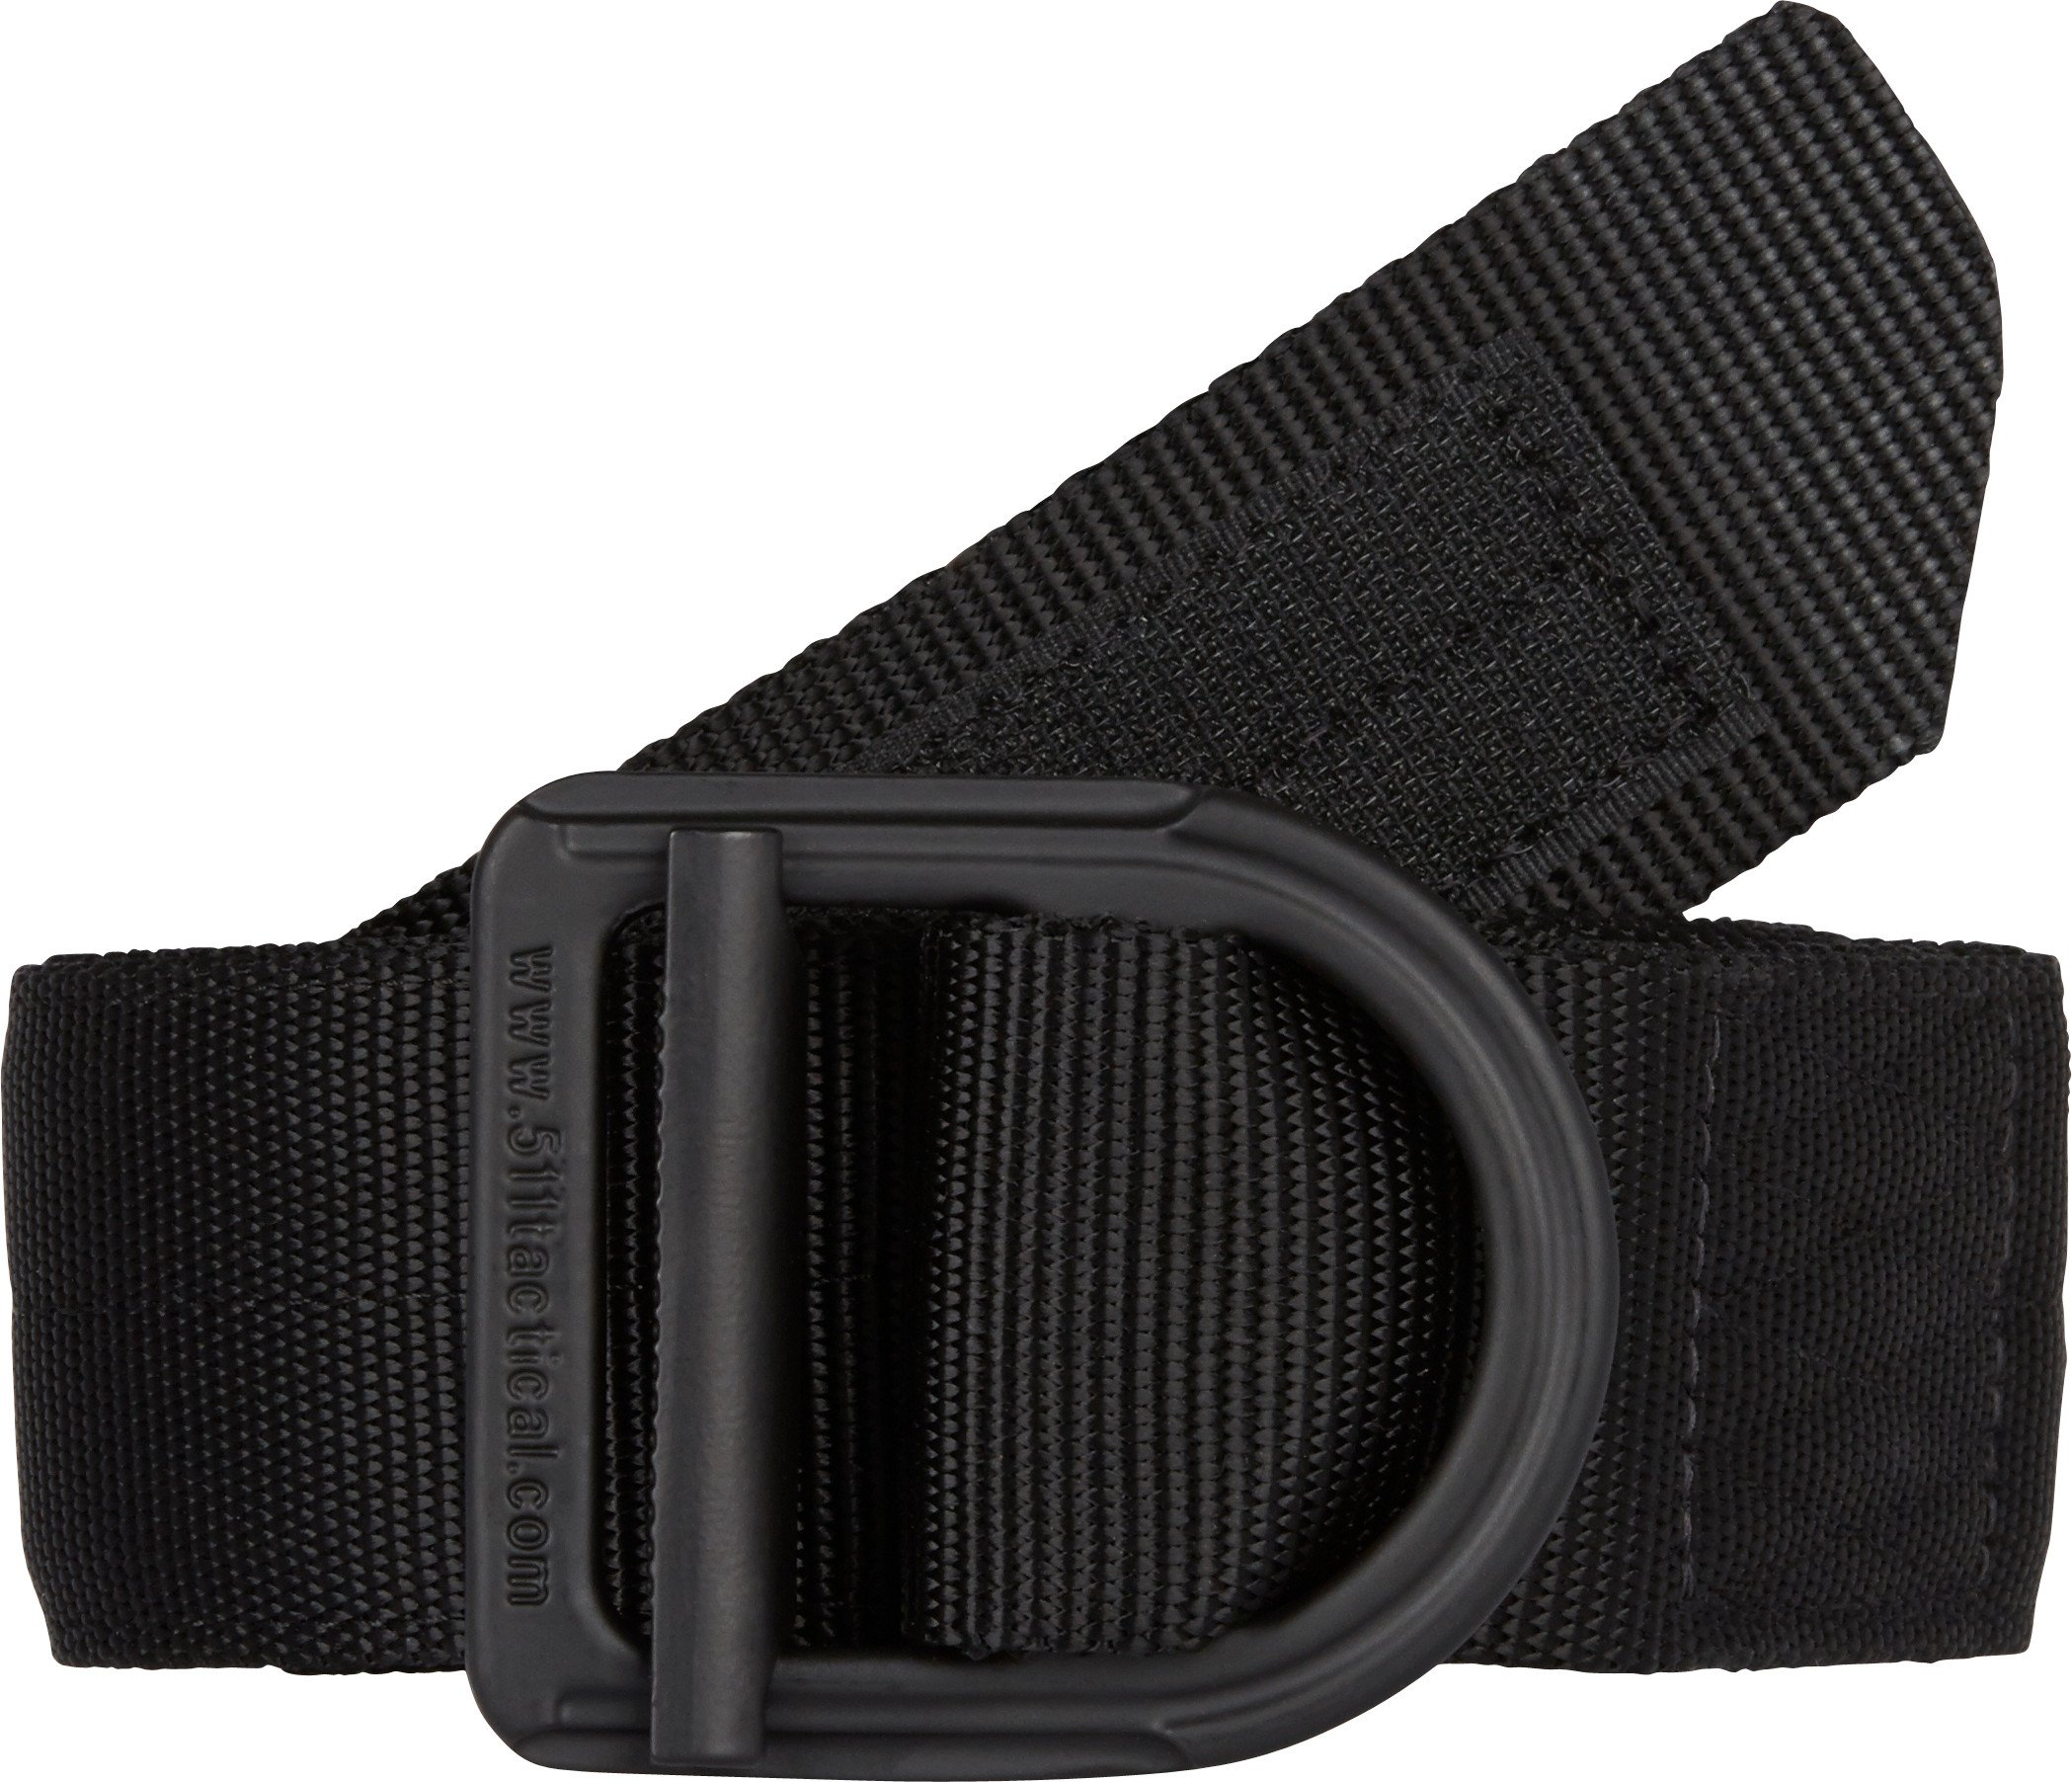 5.11 Tactical Operator 1 3/4'' Belt, Small, Black by 5.11